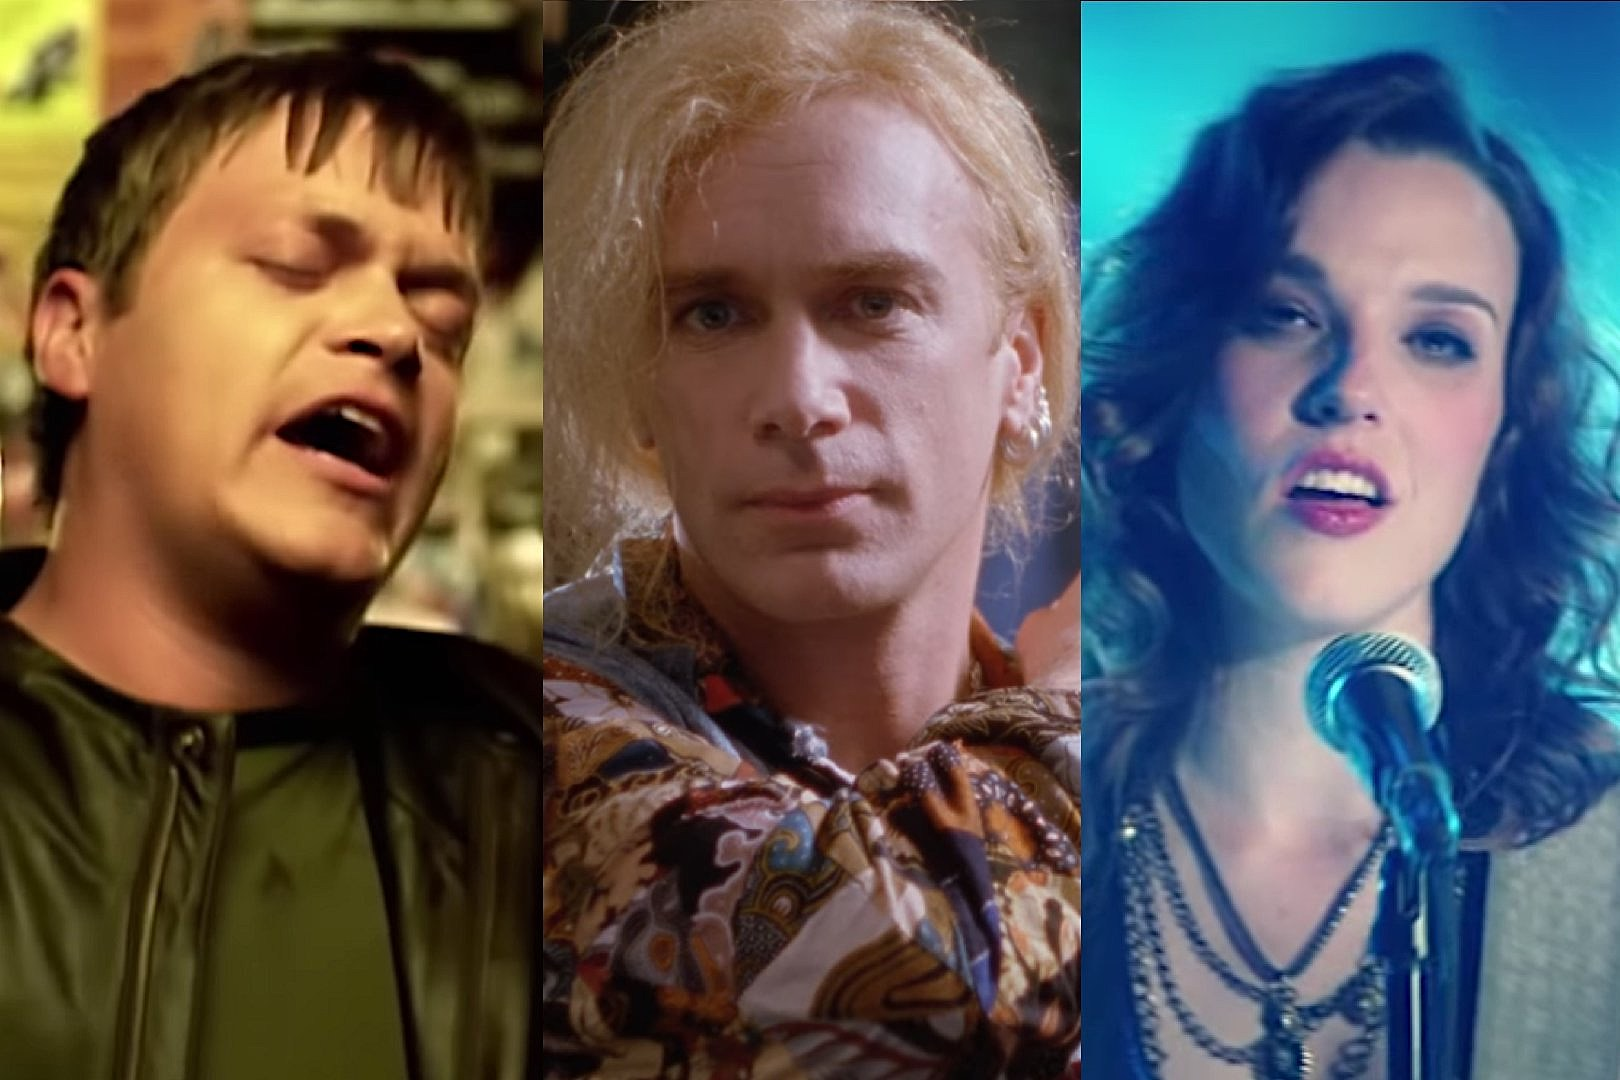 The 10 Most Romantic Hard Rock Songs to Set the Mood